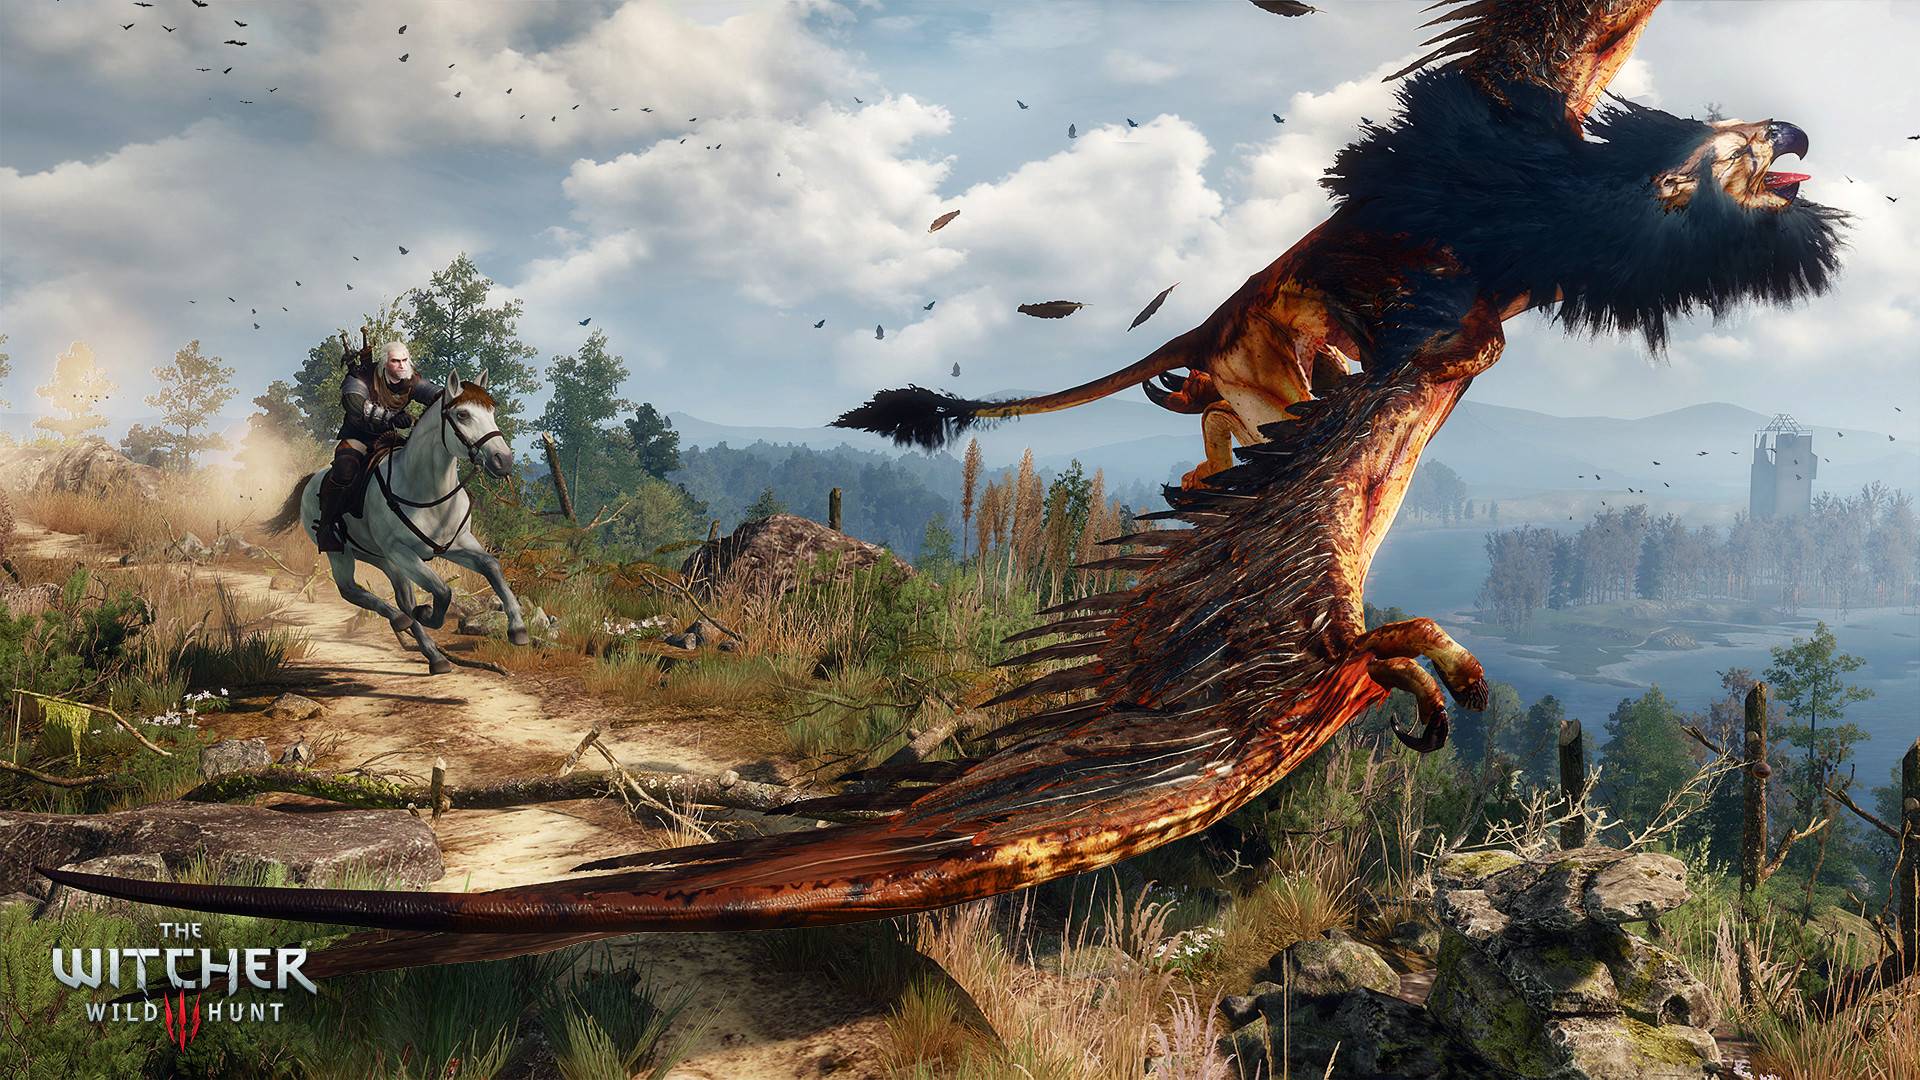 download the witcher 3 wild hunt goty edition inc all dlcs & updates repack by corepack fitgirl blackbox r.g. mechanics r.g. catalyst singlelink iso kumpulbagi kutucugum partagora